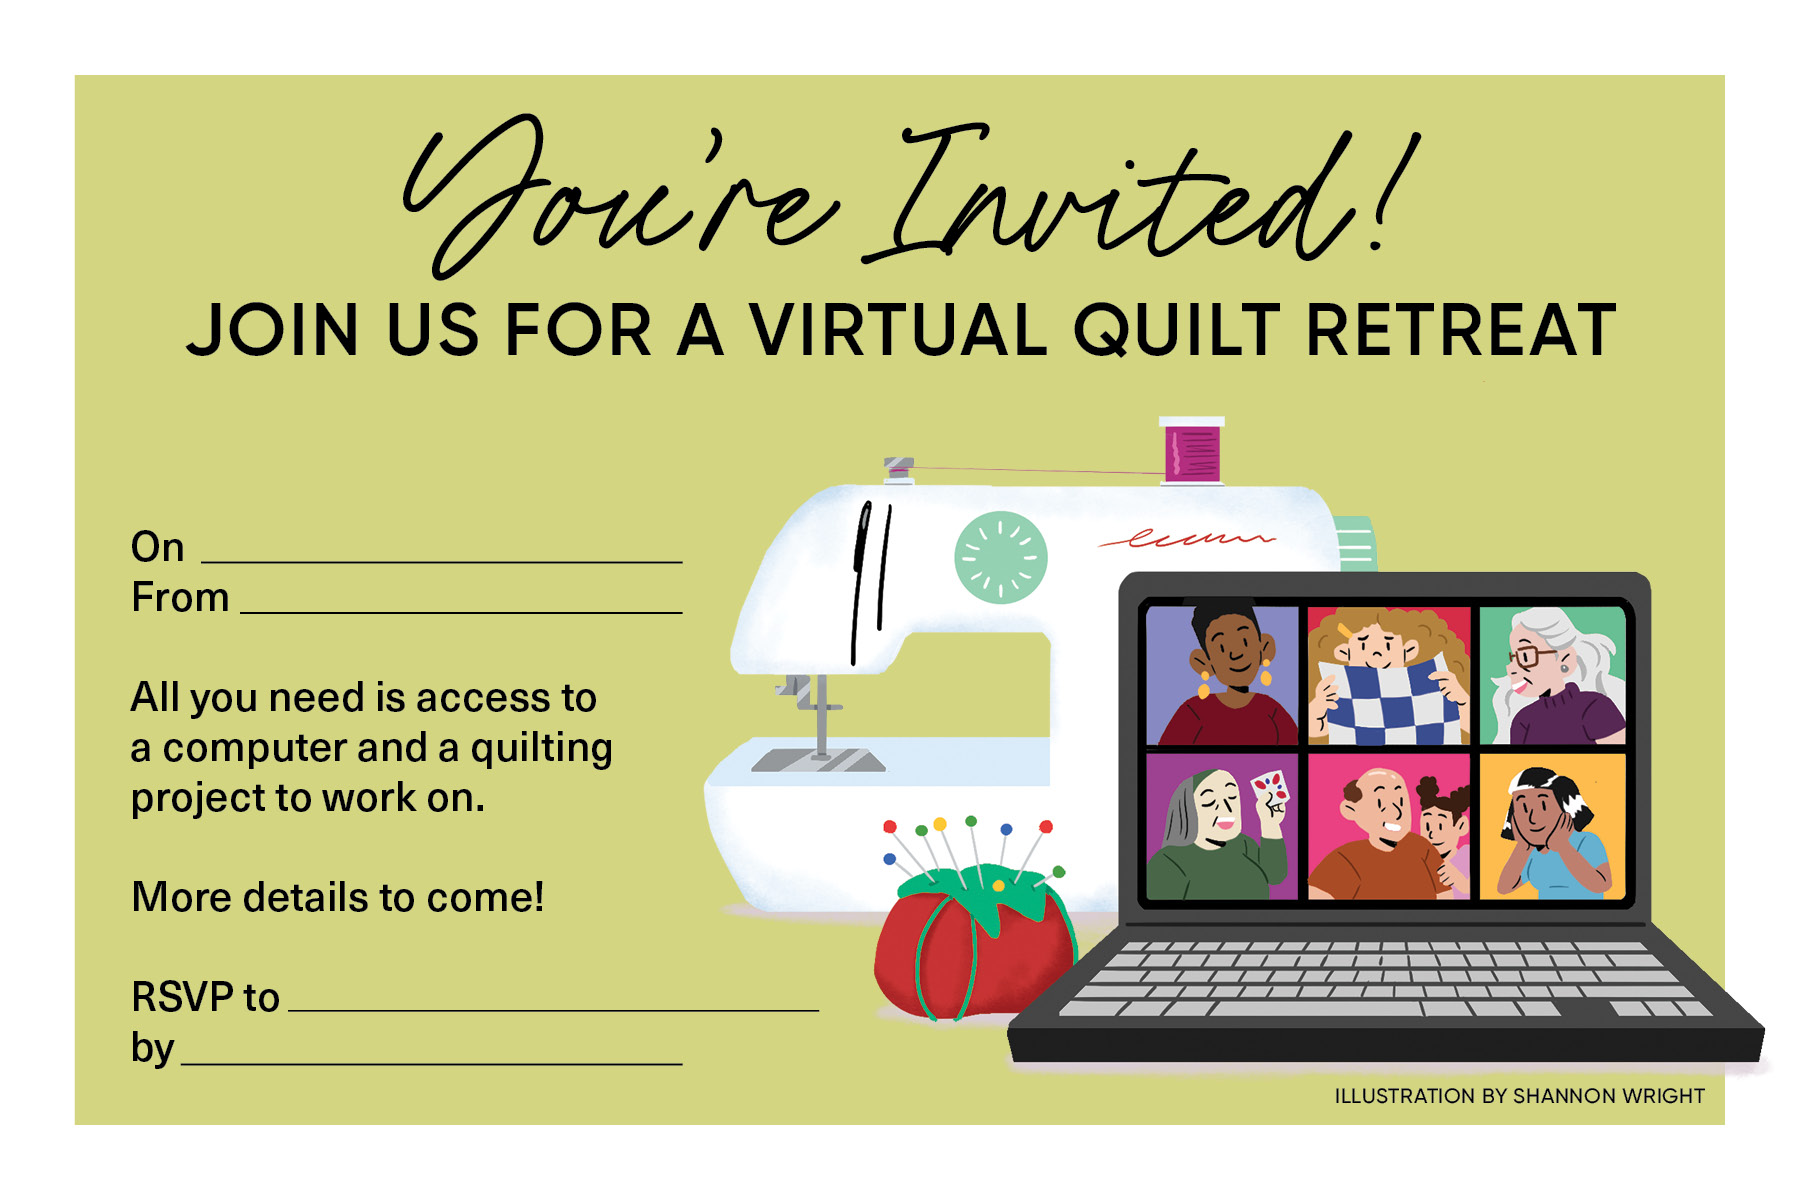 Virtual Quilt Retreat